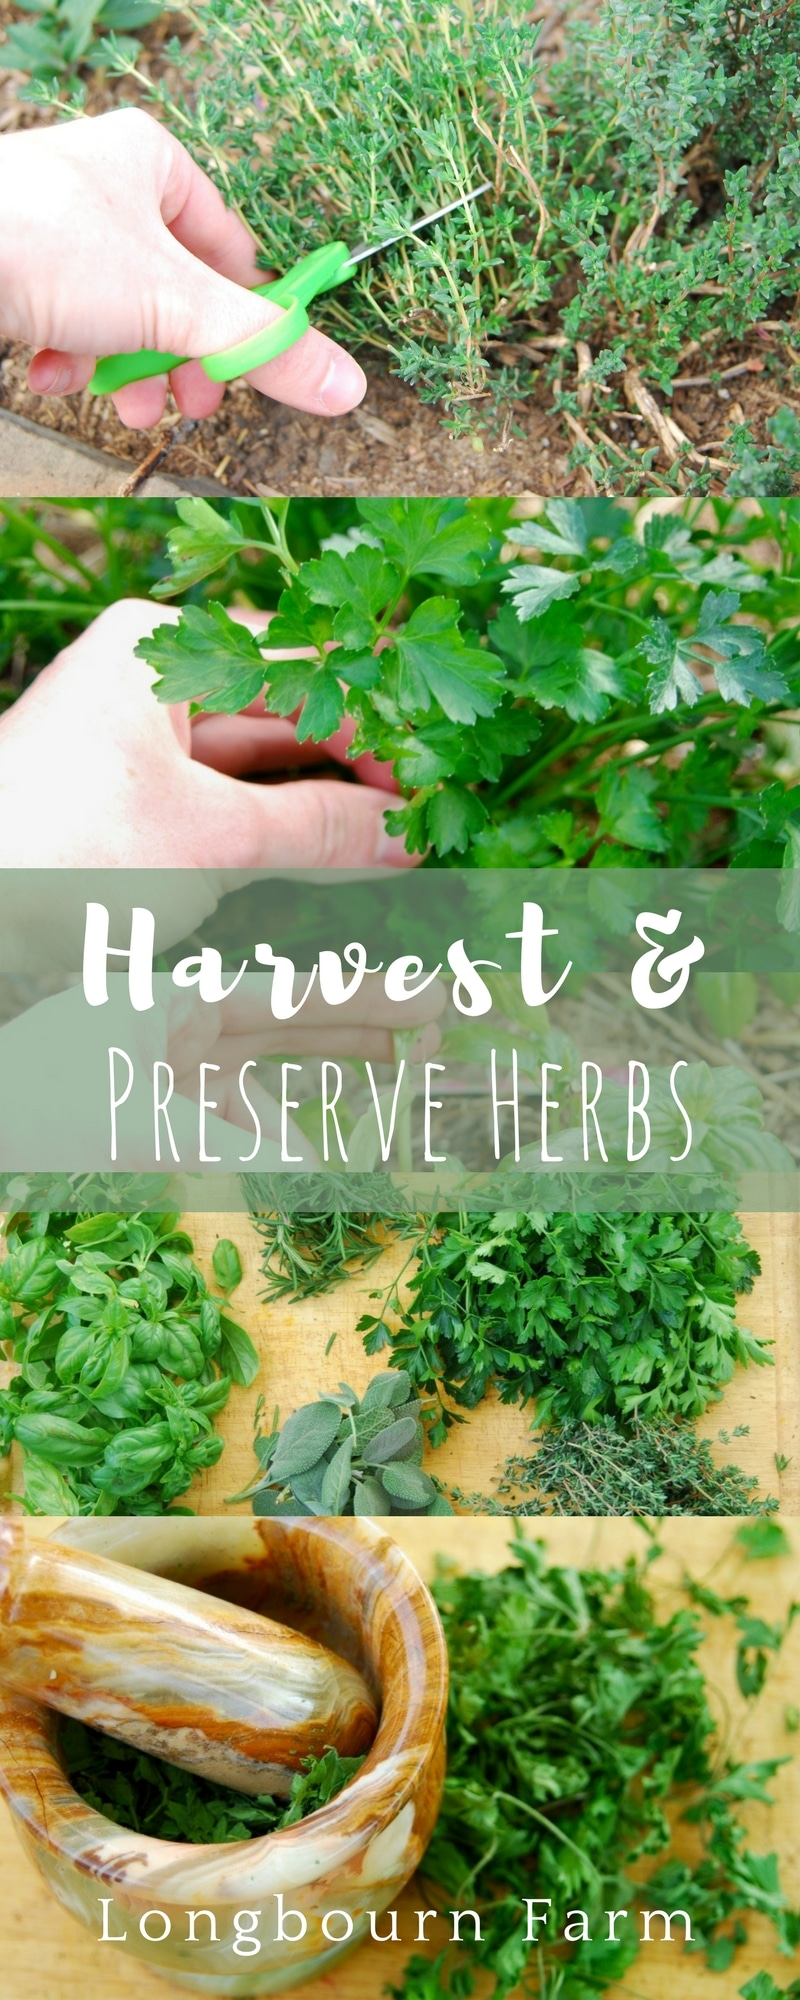 Learn how to harvest herbs and how to preserves them! A step-by-step tutorial on how to cut each herb so it will continue to grow and produce, along with a step-by-step guide to preserving your abundance of herbs.